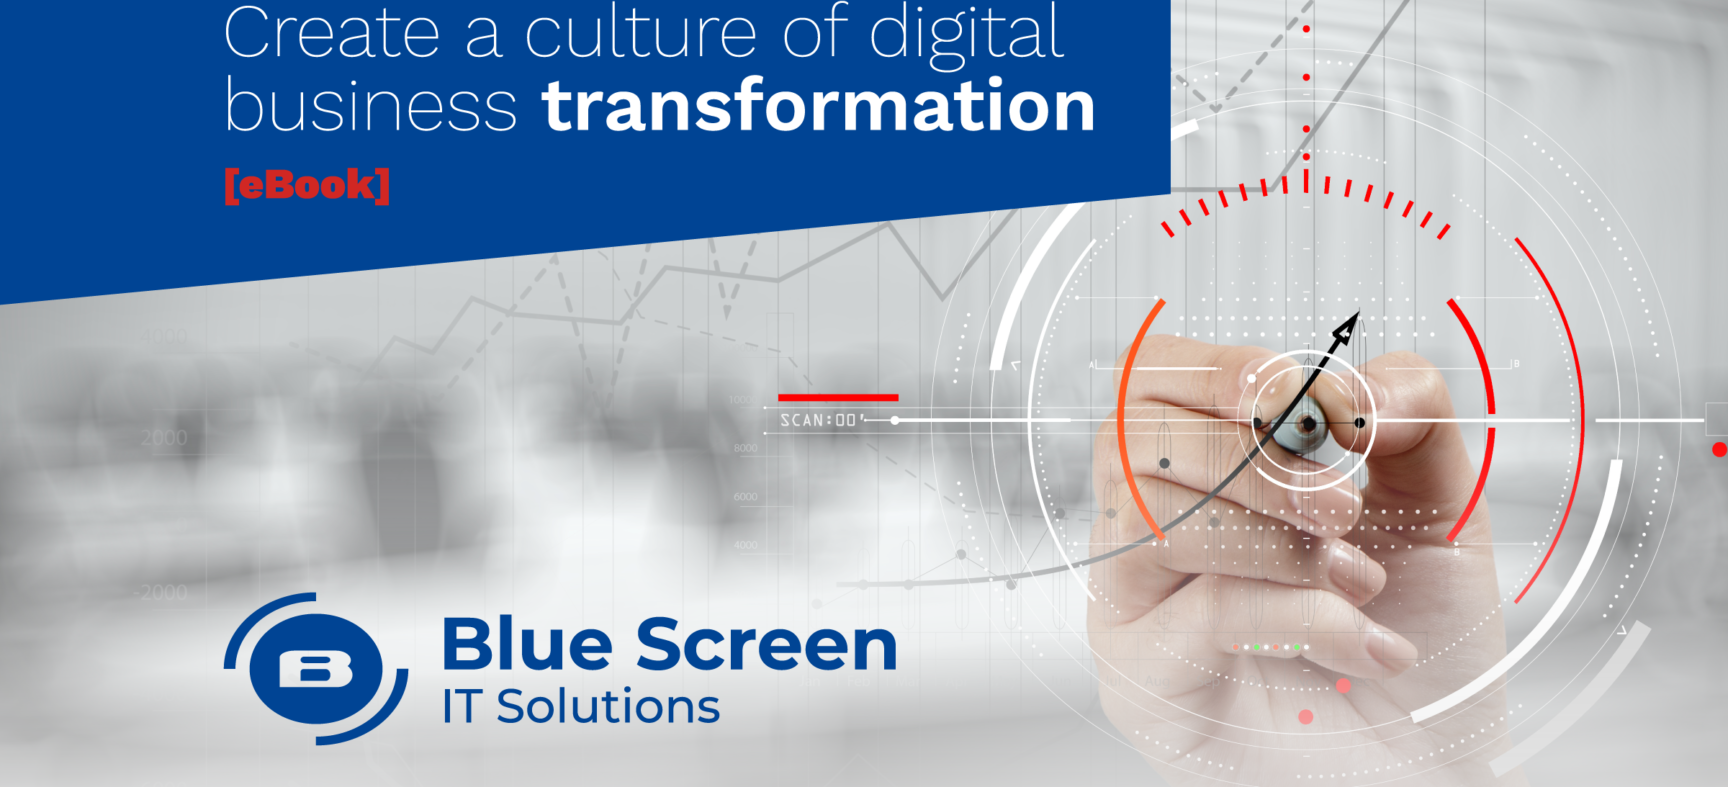 Create a culture of digital business transformation